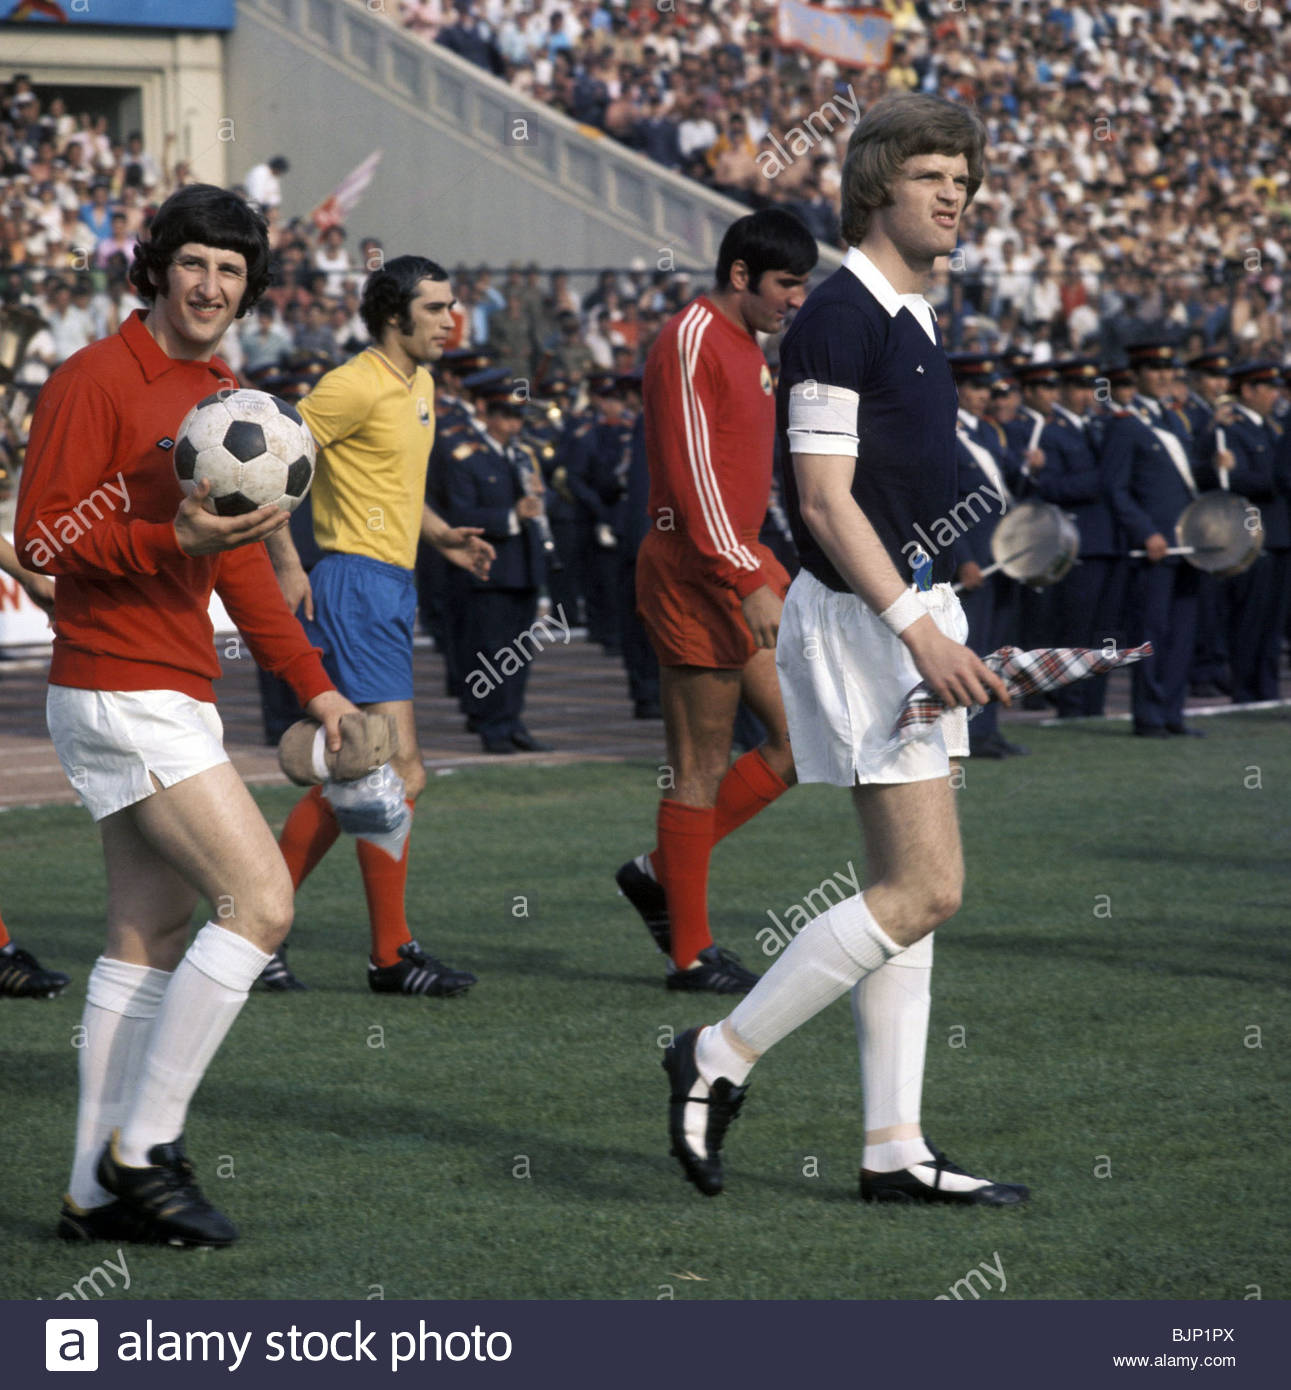 01/06/75 EUROPEAN CHAMPIONSHIP QUALIFIER ROMANIA V SCOTLAND (1-1) 23 AUGUST STADIONUL - BUCHAREST Scotland captain - Stock Image